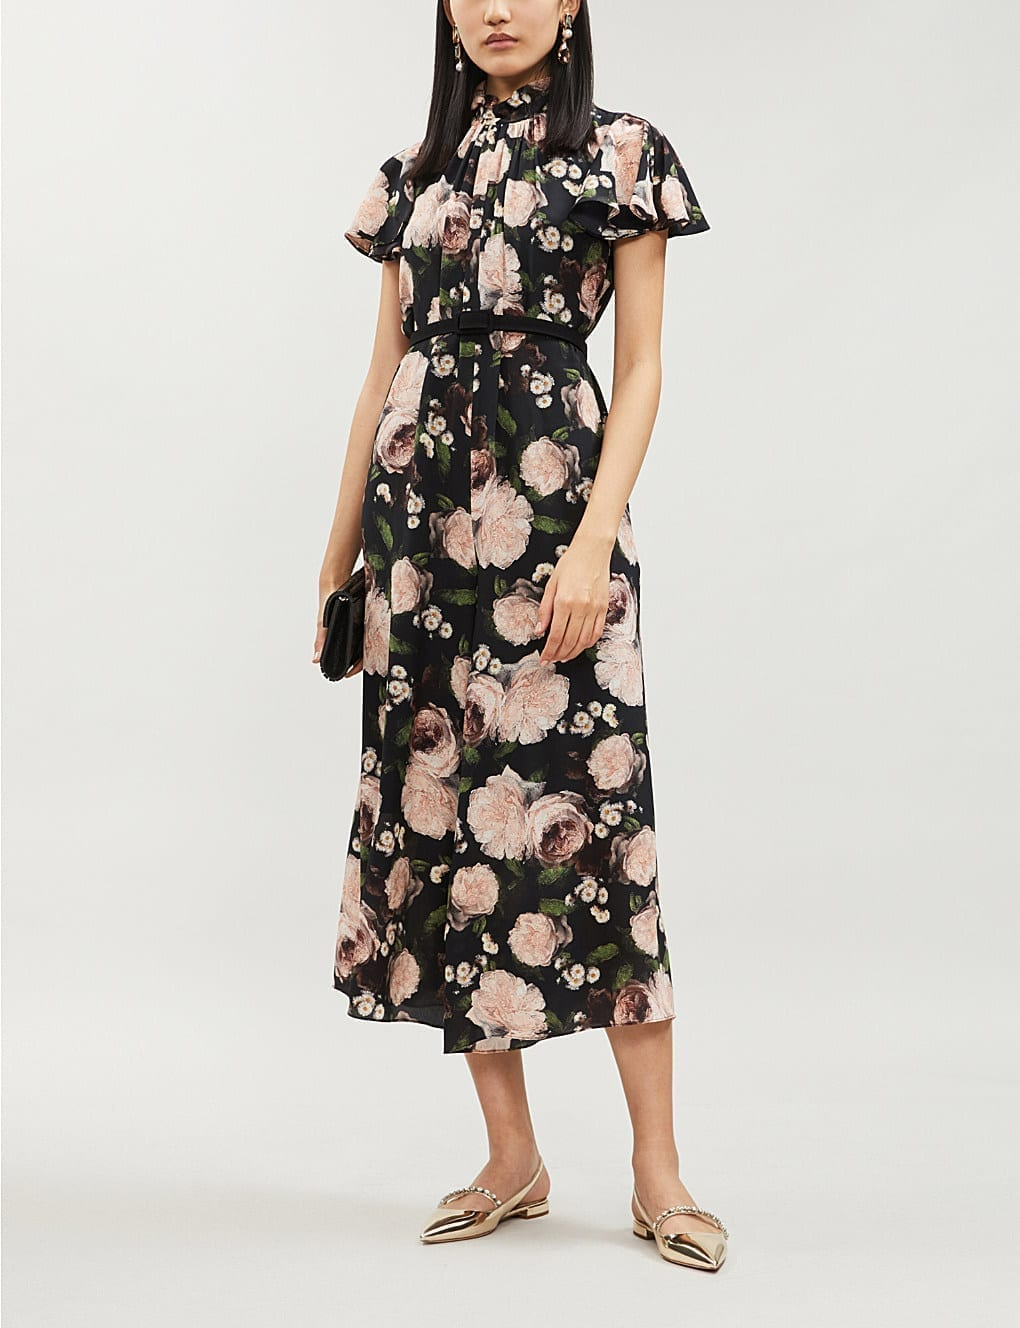 ERDEM Ella May Floral-Print Silk-Chiffon Midi Black/Pink Dress